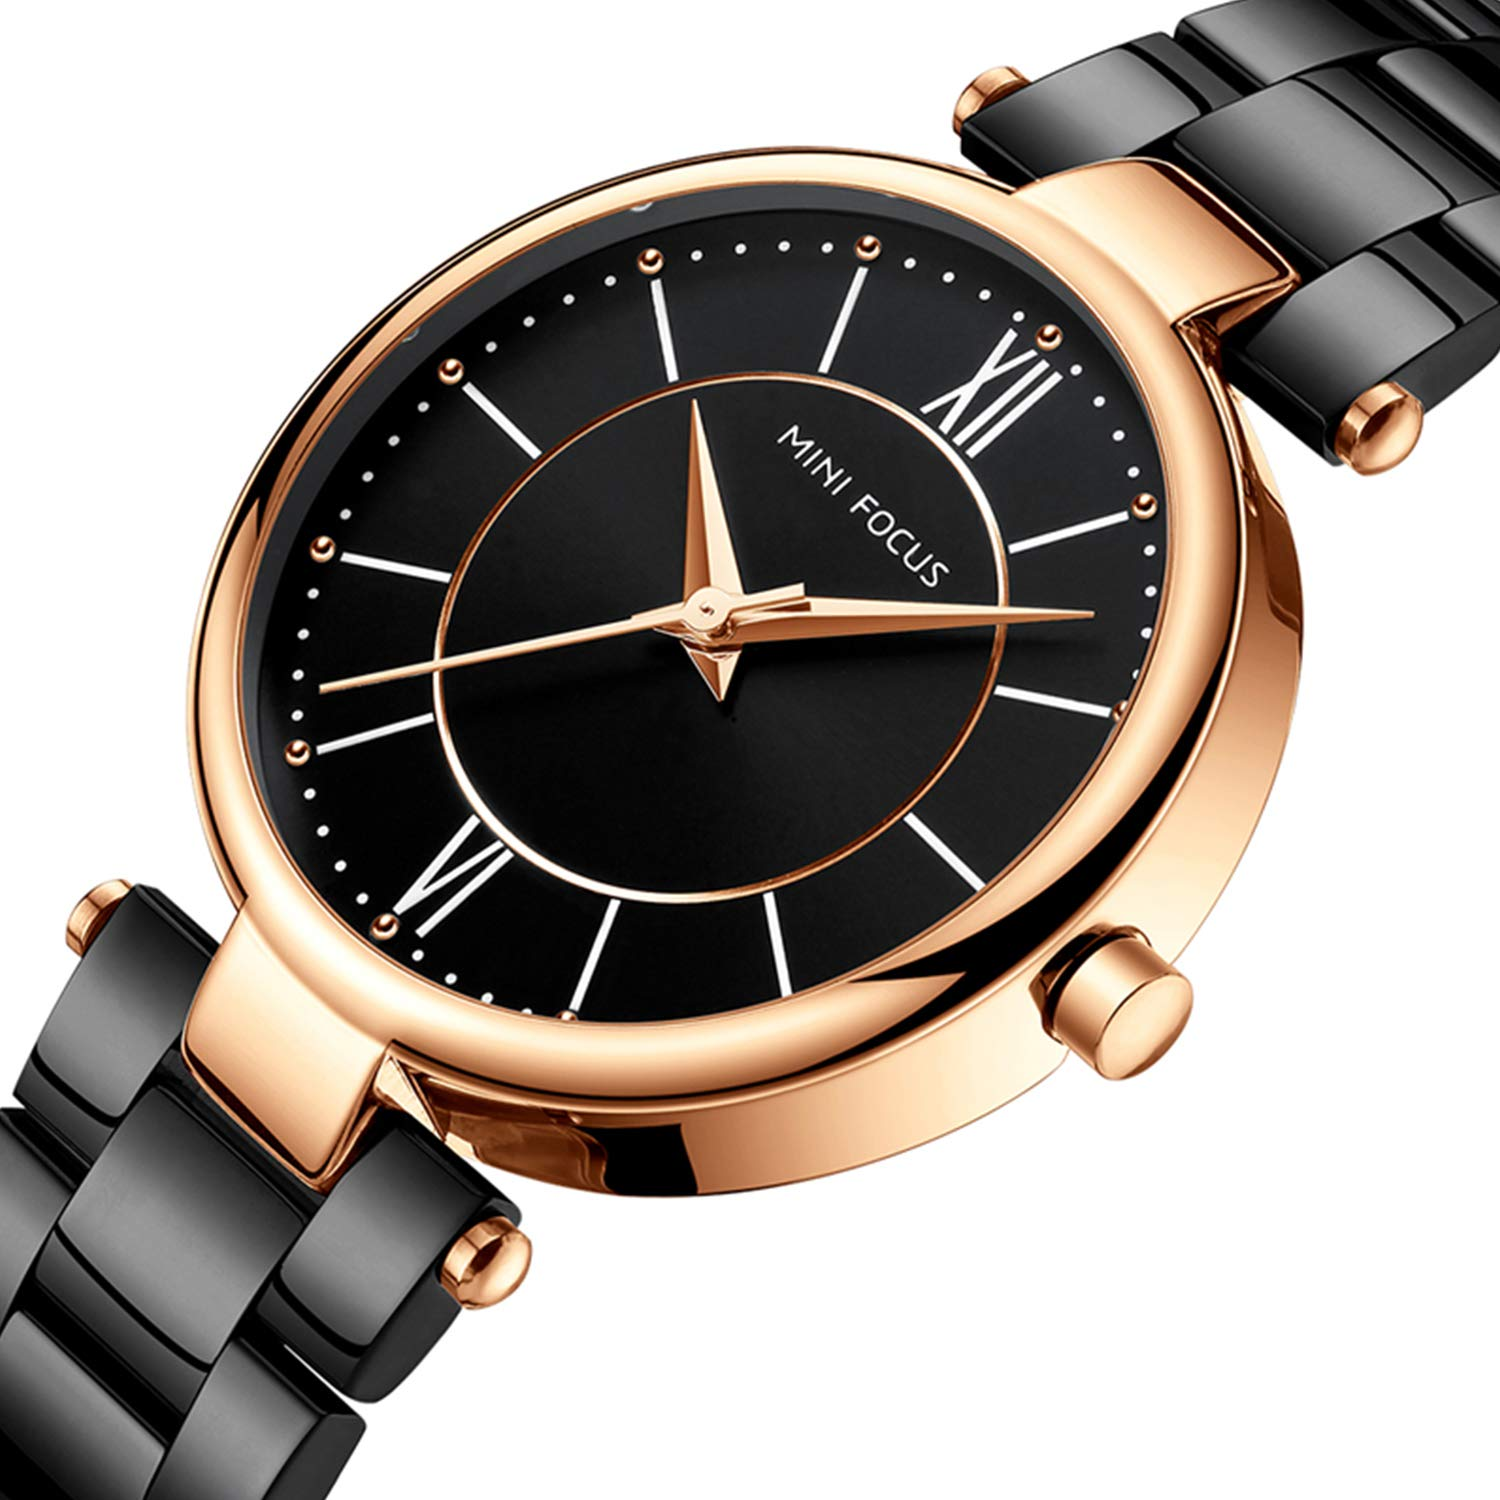 Amazon.com: Womens Watch,Stone Quartz Watch with Stainless Steel Casual Fashion Wrist Watch for Ladies: Watches